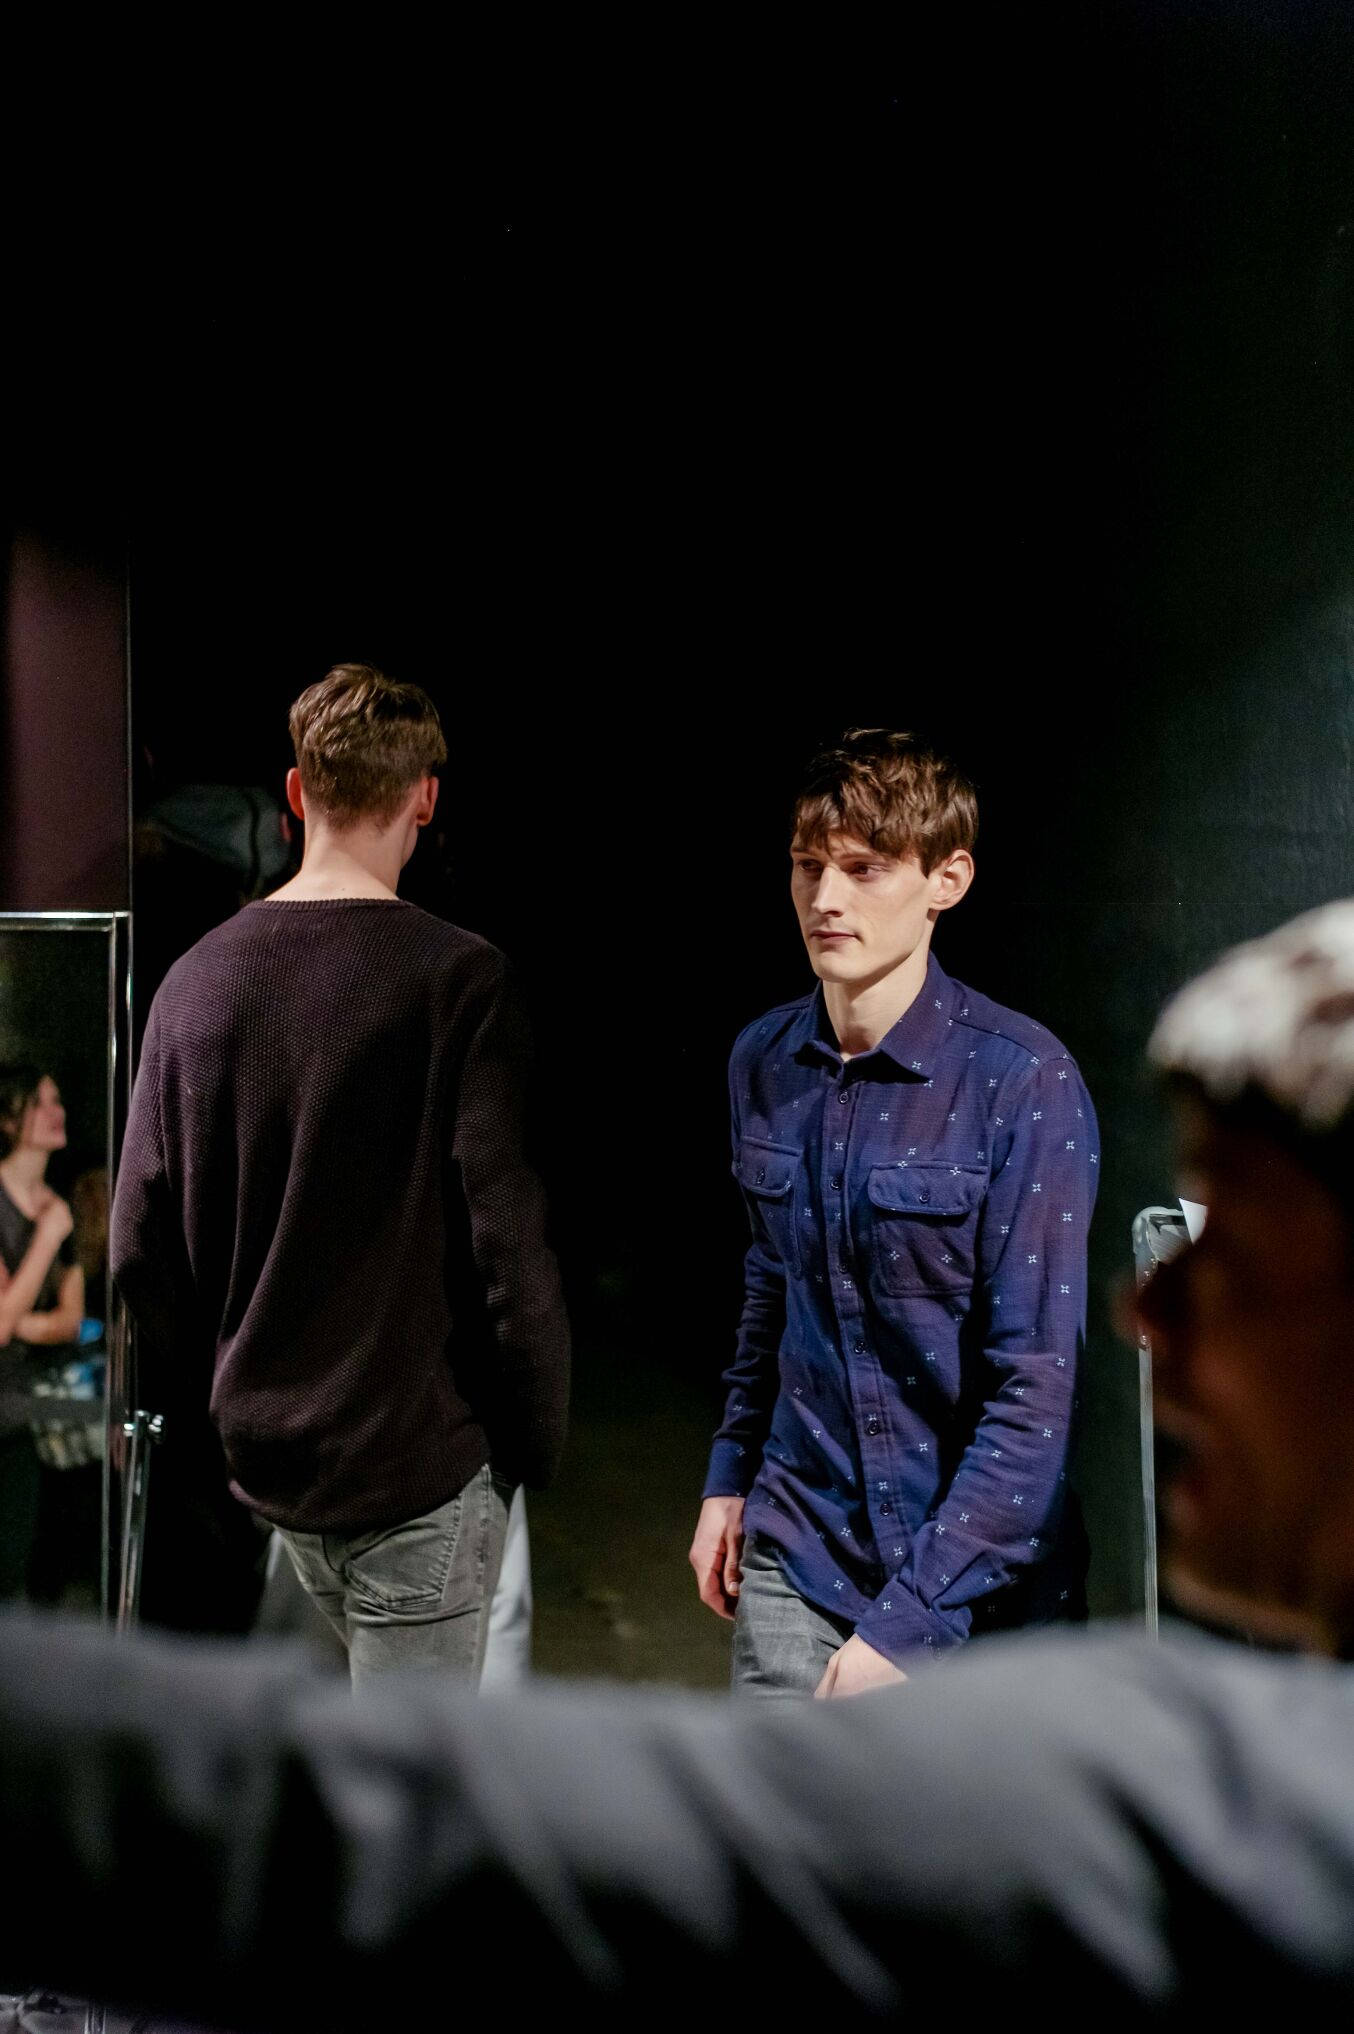 Diesel Black Gold Fashion Models Backstage